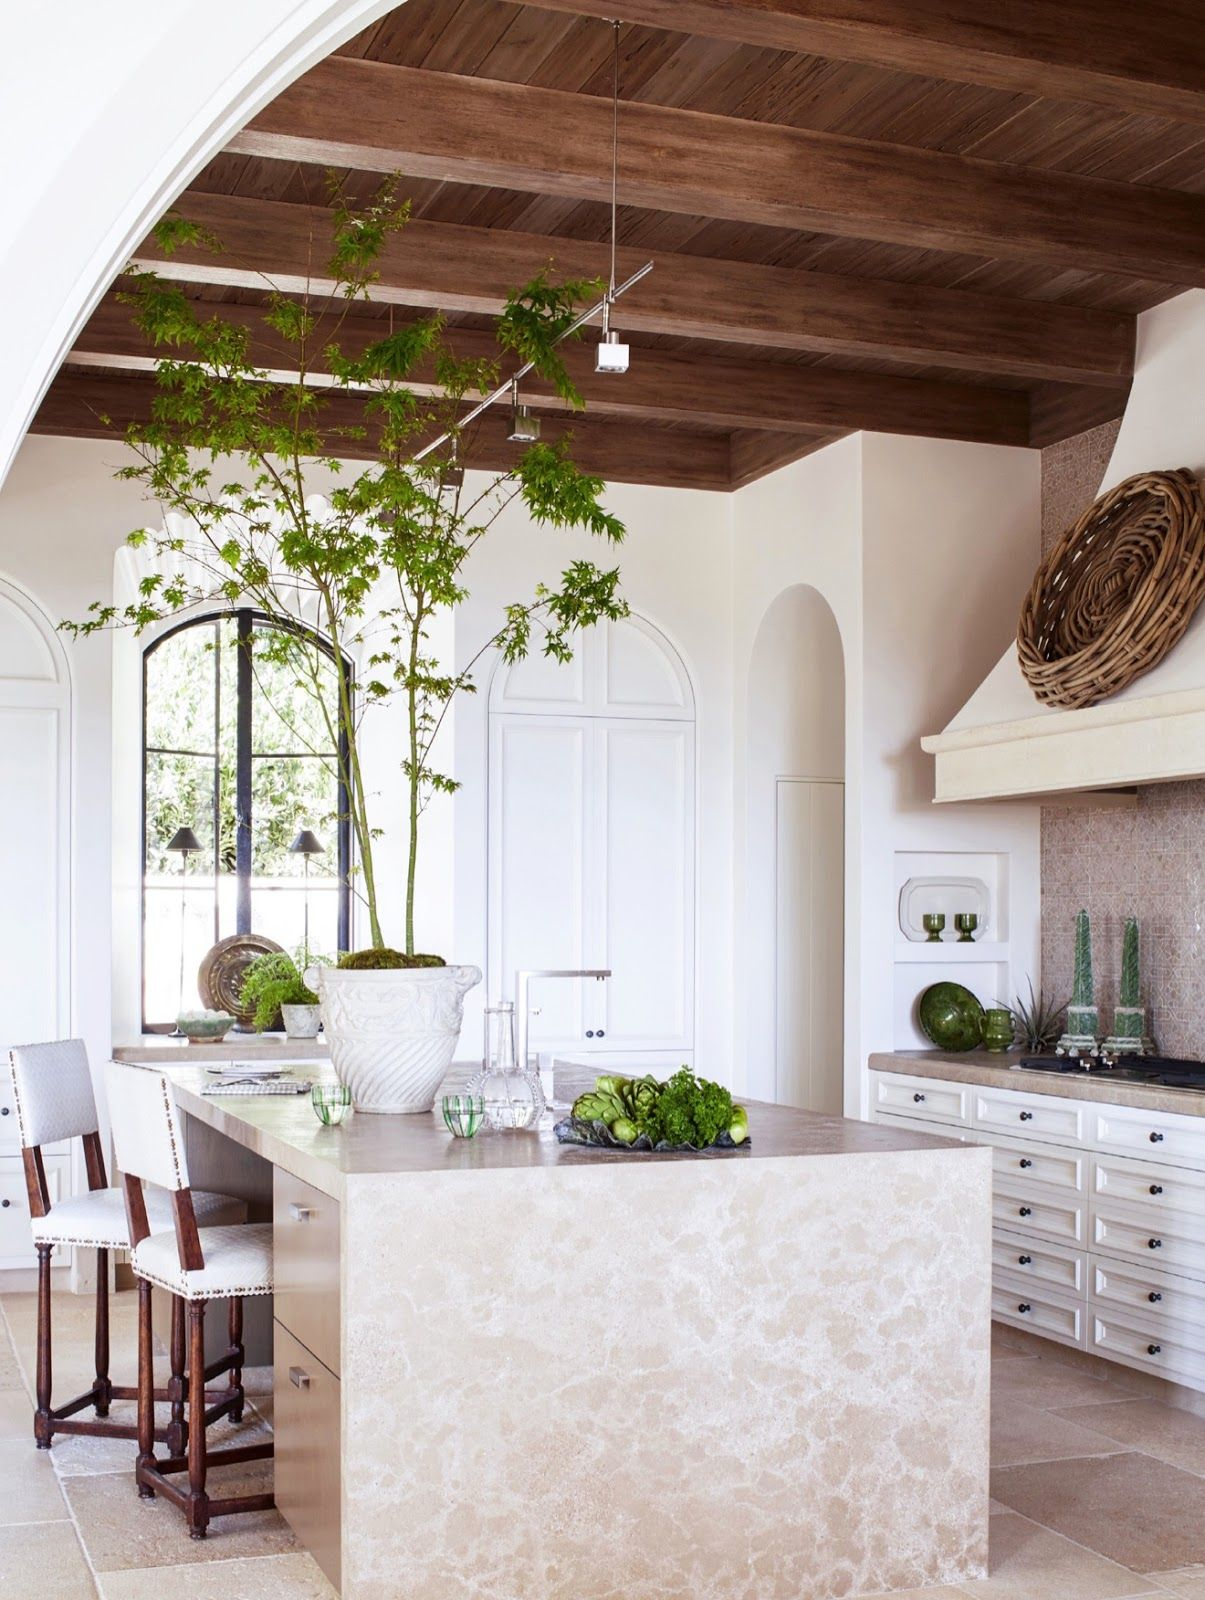 Splendid Sass Richard Hallberg Design In Montecito